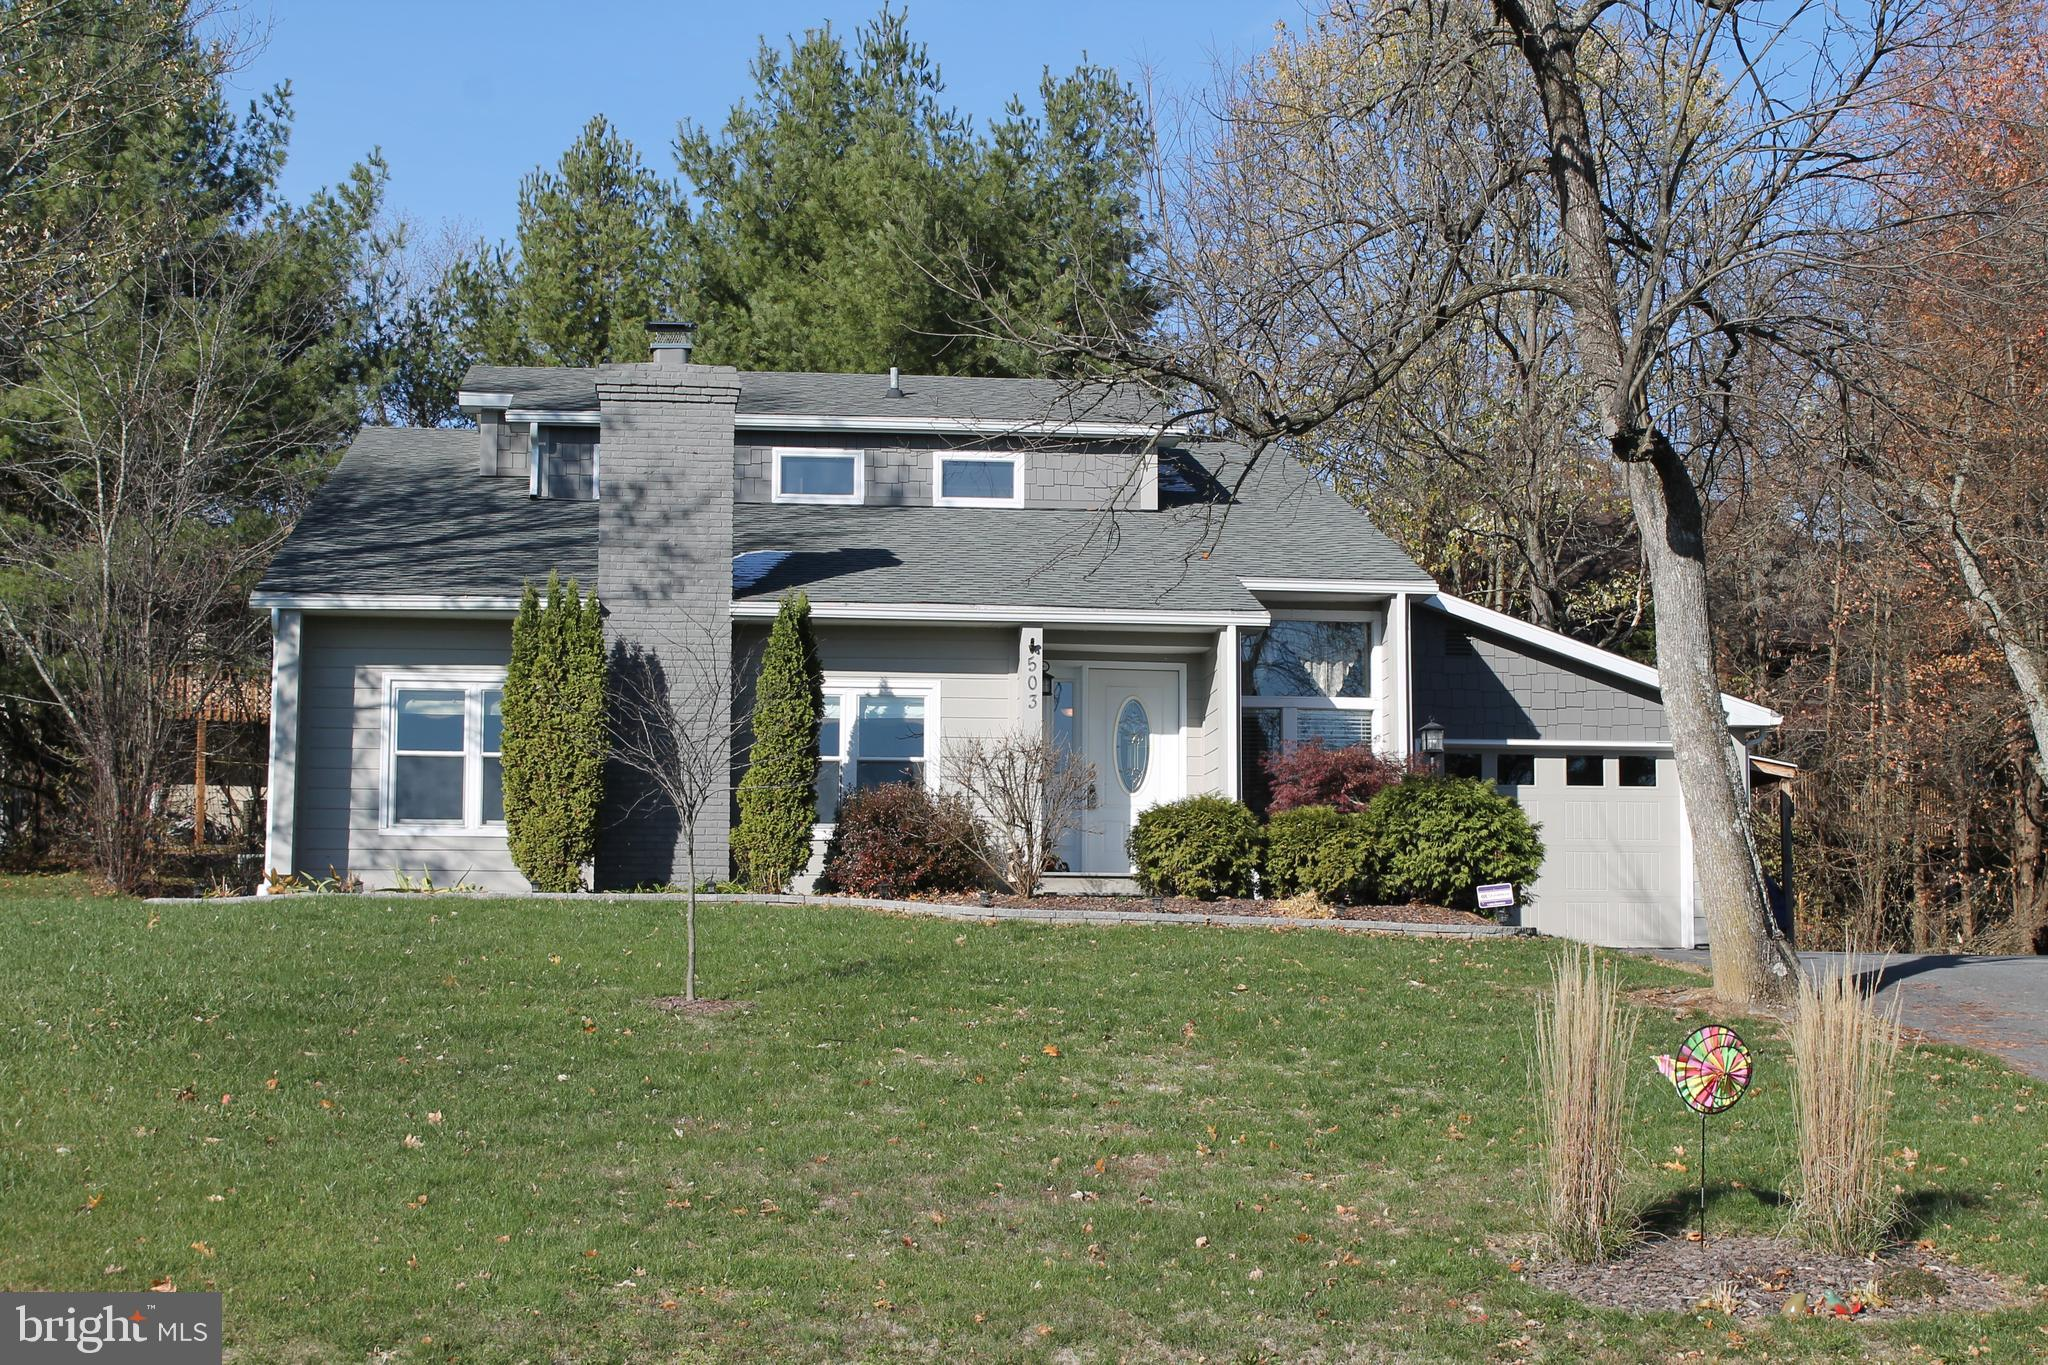 SPACIOUS 4 BEDROOM contemporary home in Lake Holiday! LARGE open living space with vaulted ceilings